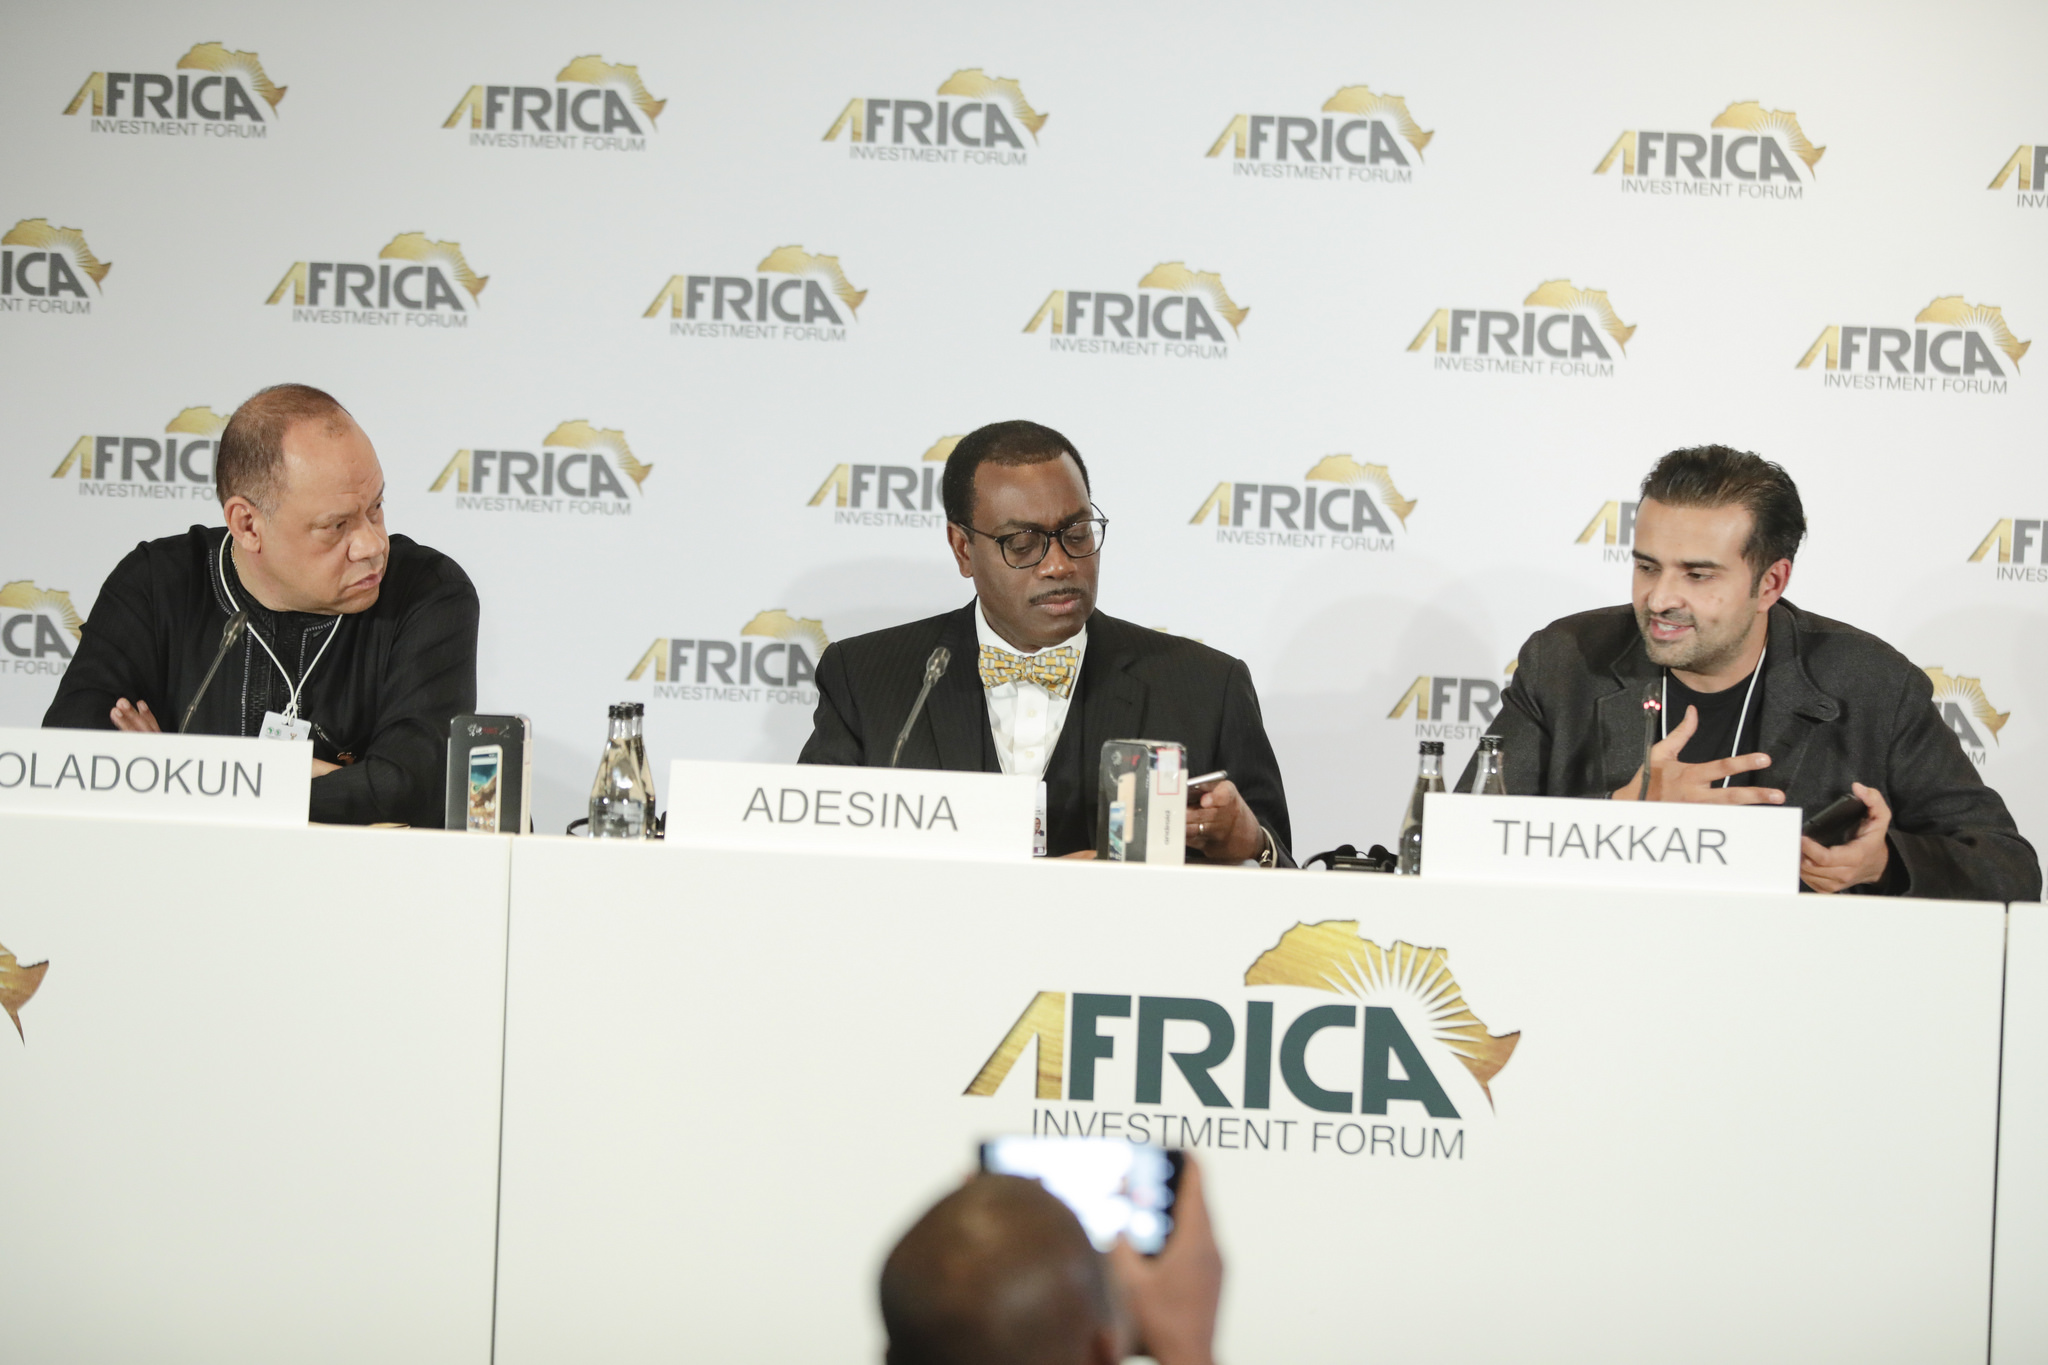 Unveiling the product, Maraphone, at the just concluded Africa Investment Forum